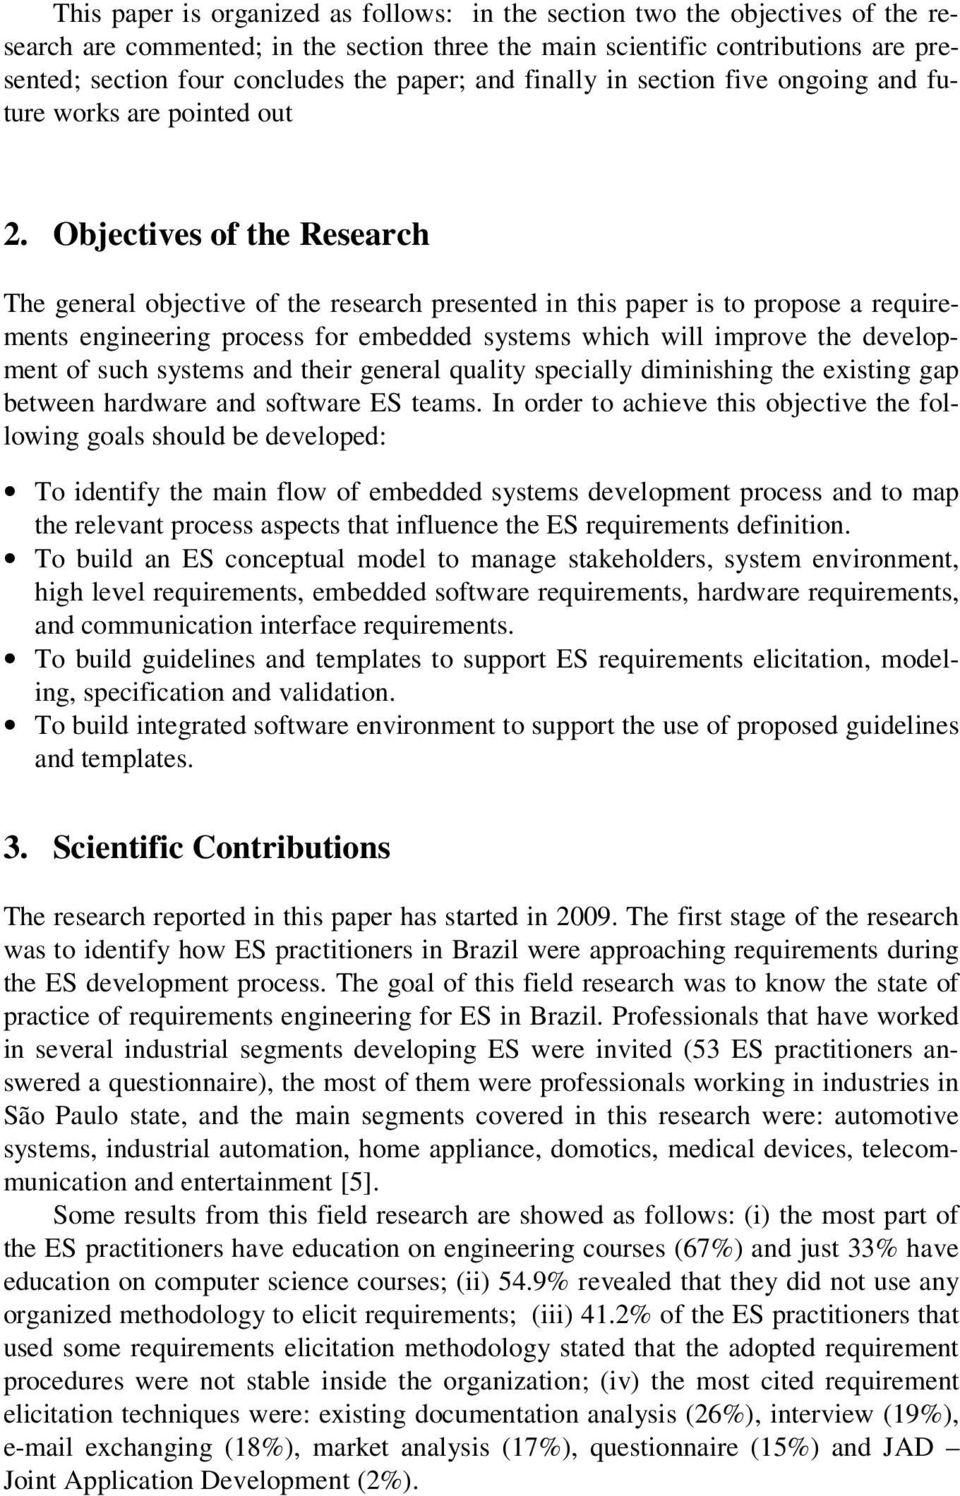 Objectives of the Research The general objective of the research presented in this paper is to propose a requirements engineering process for embedded systems which will improve the development of